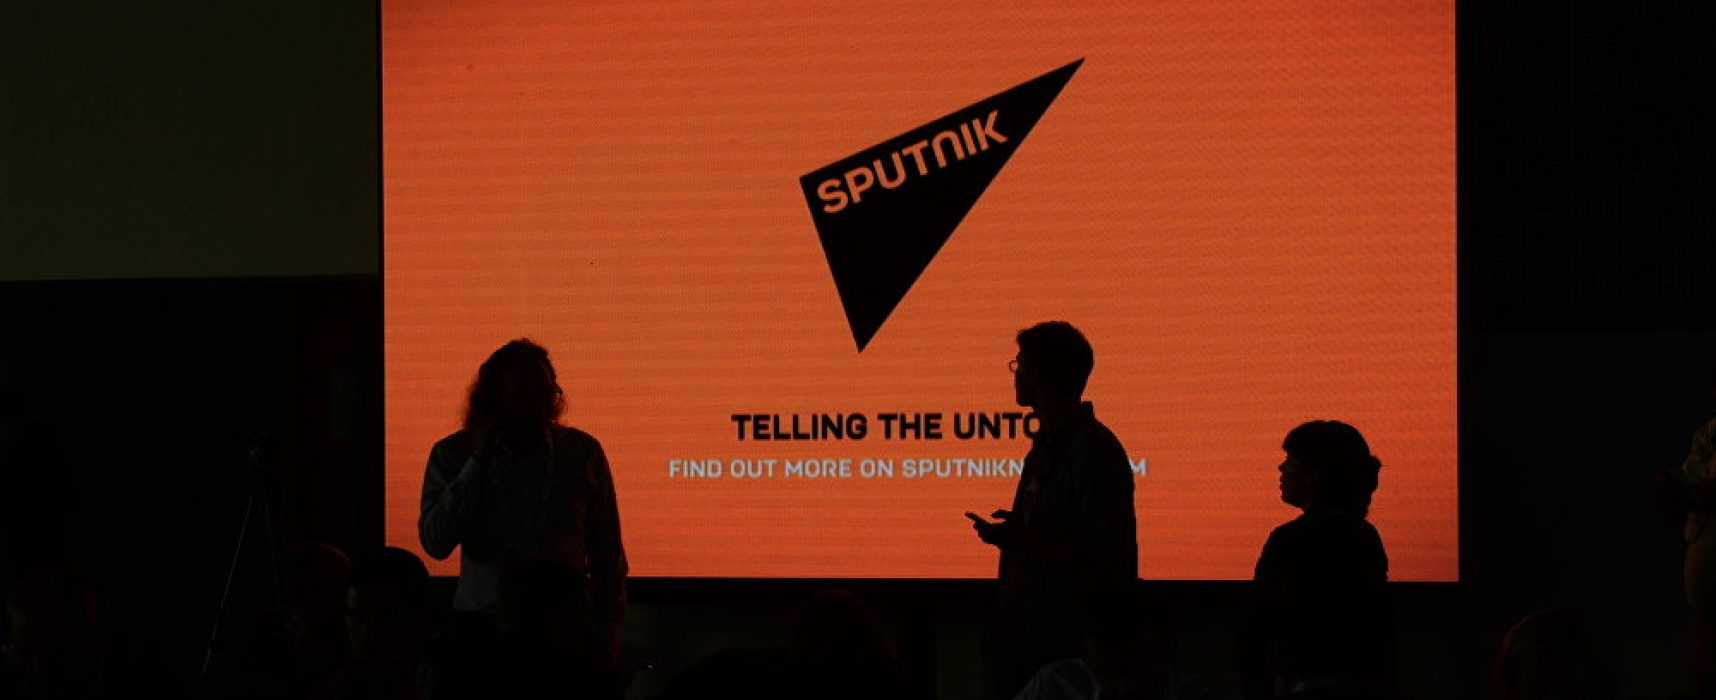 Sputnik Has New Troubles in Baltics